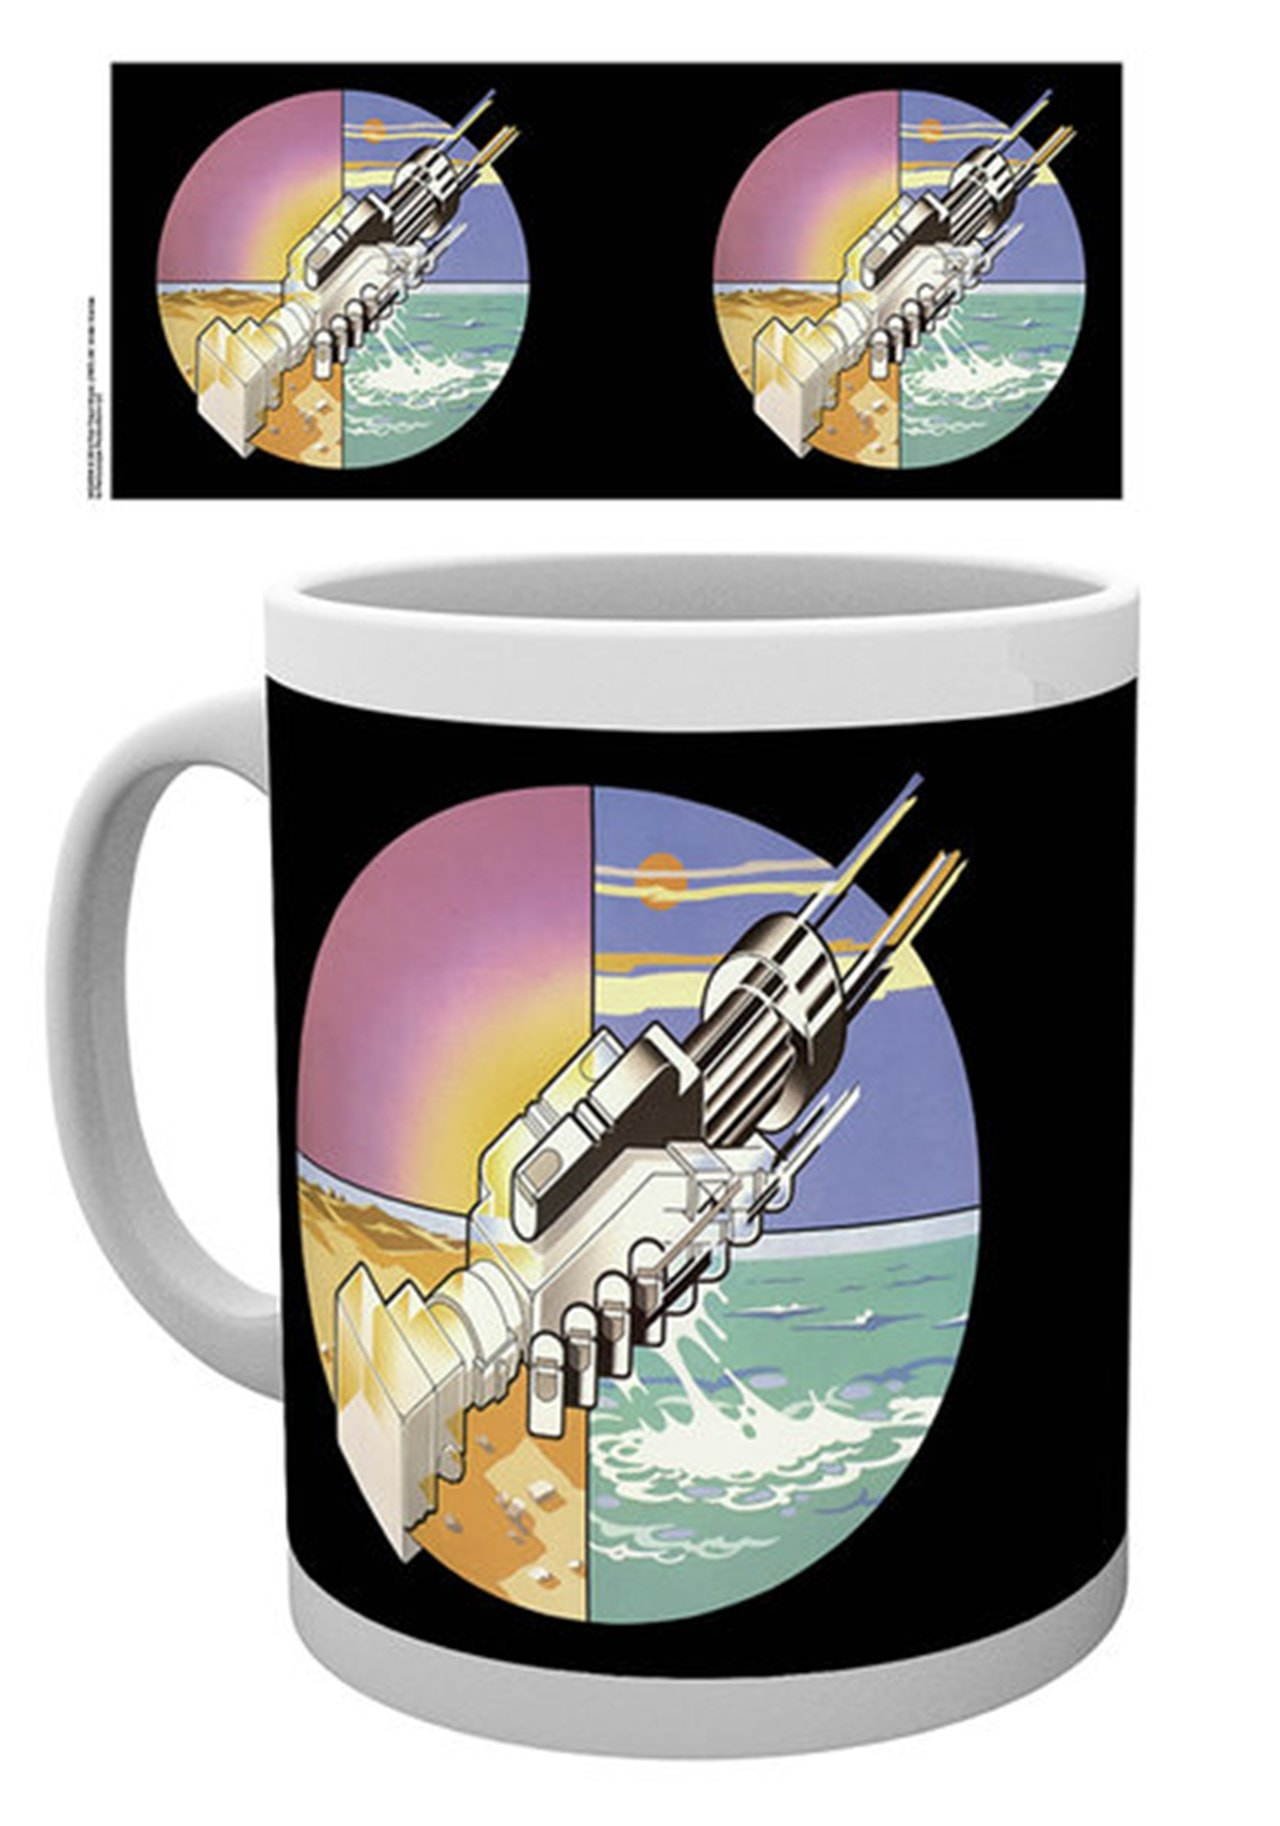 Pink Floyd Wish You Were Here Mug - 1